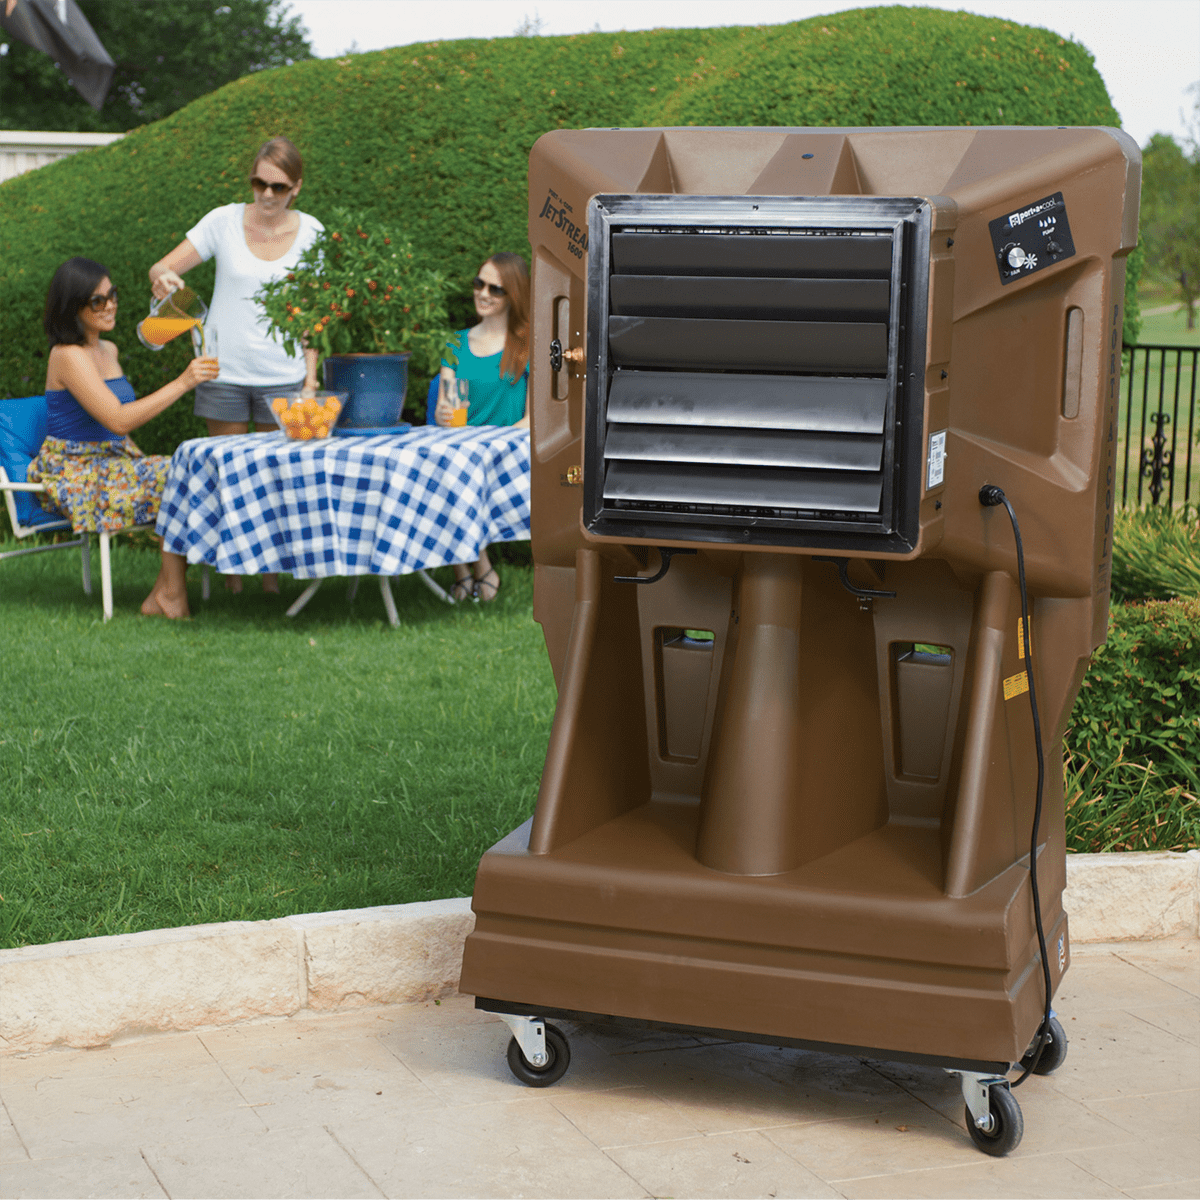 concert events midsized evaporative cooler blowing across a lawn where people are enjoying a lunch